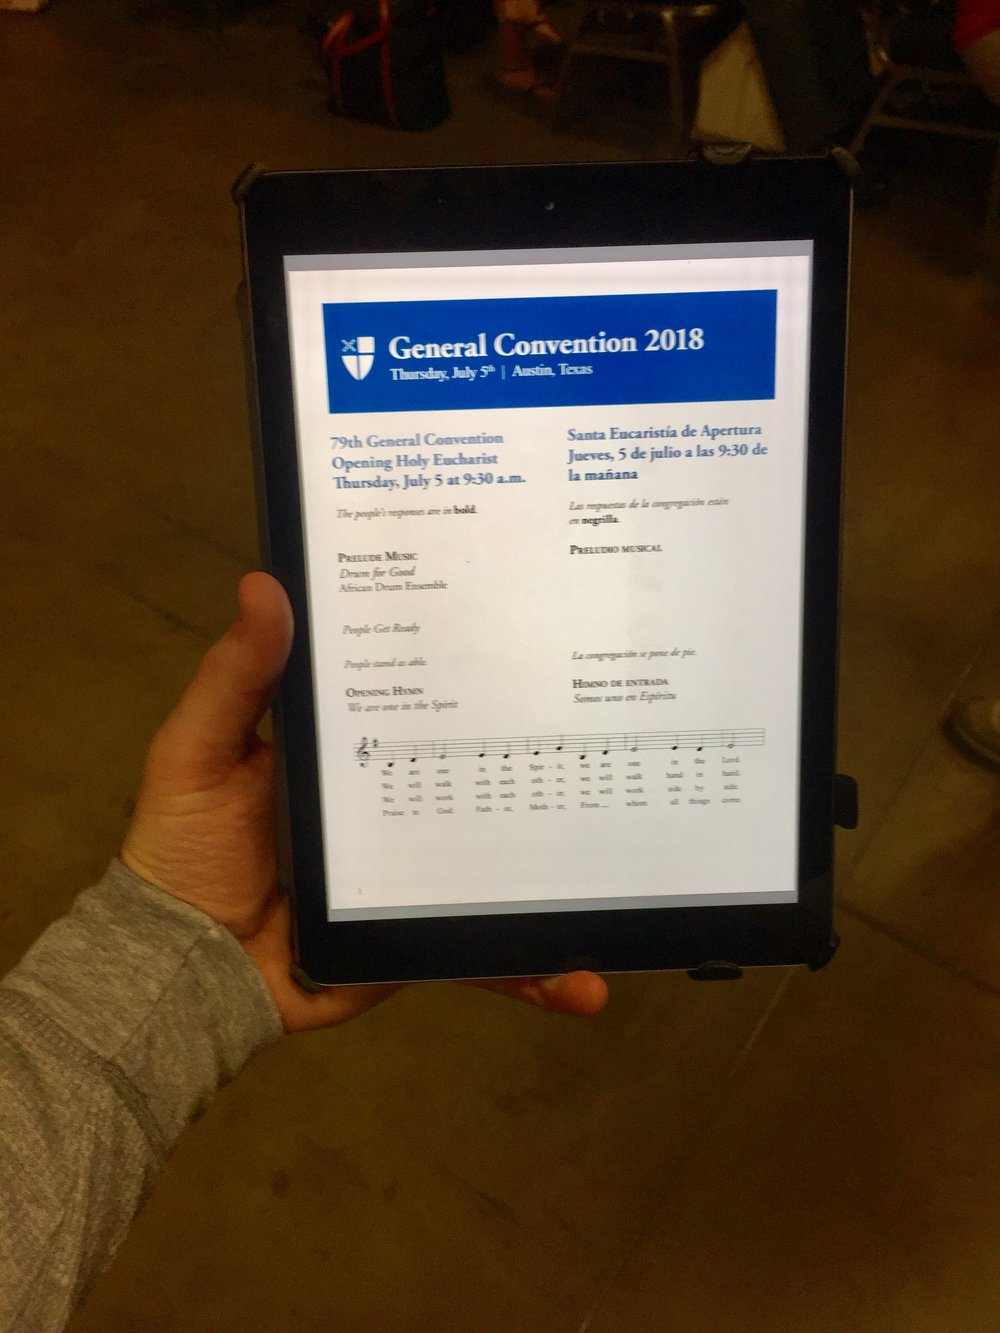 Worship leaflets and resolutions are all on iPads or other electronic devices. Transitioning to digital resources saved an estimated one million pieces of paper in 2015.